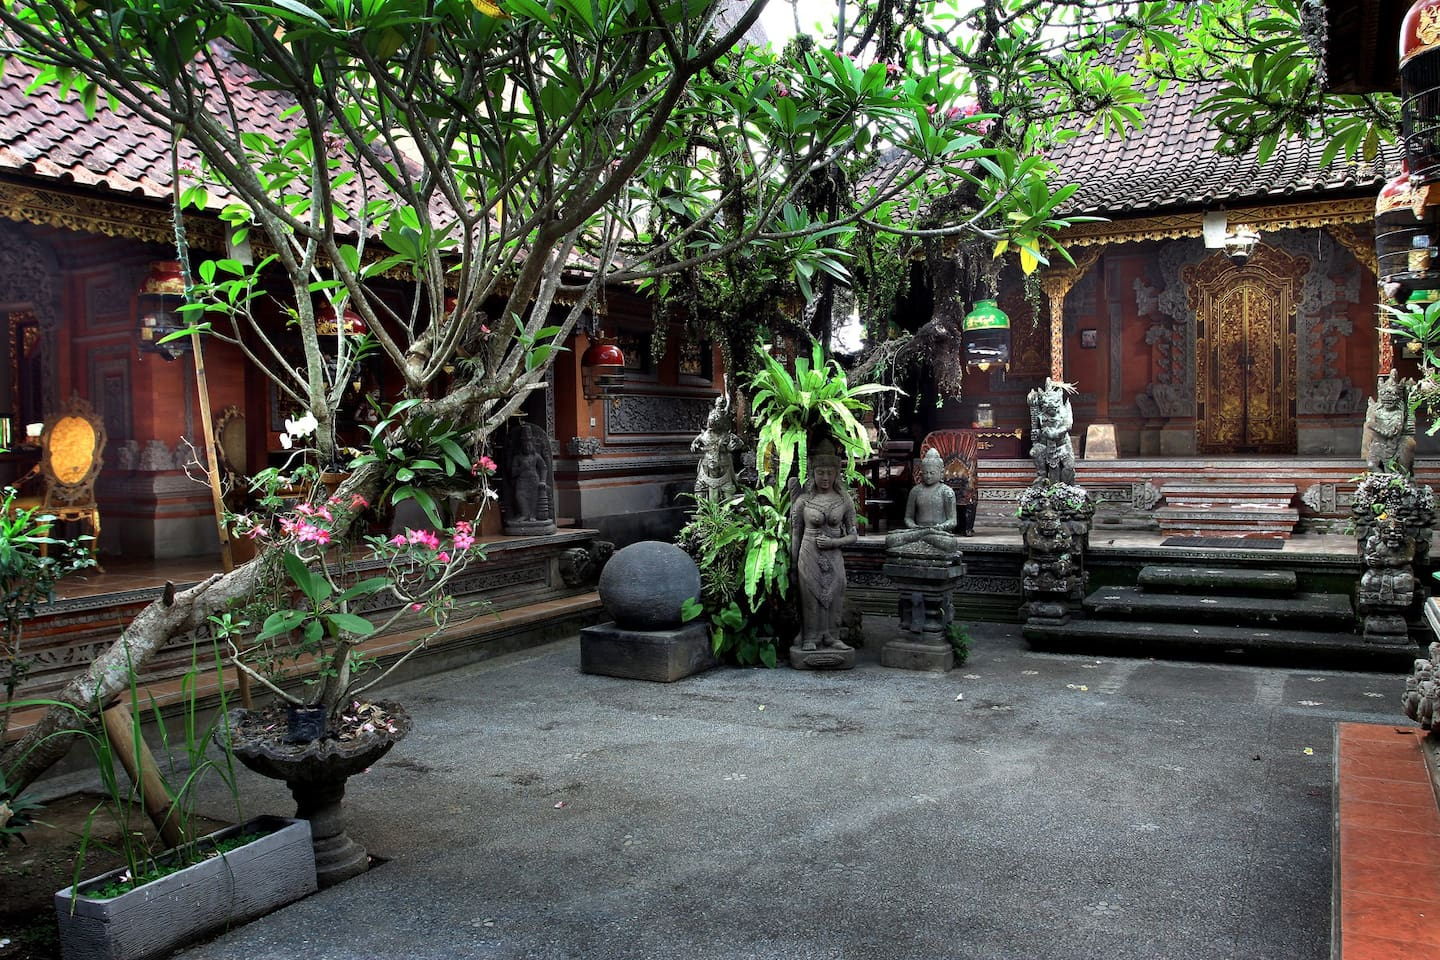 Typical Traditional Balinese compound